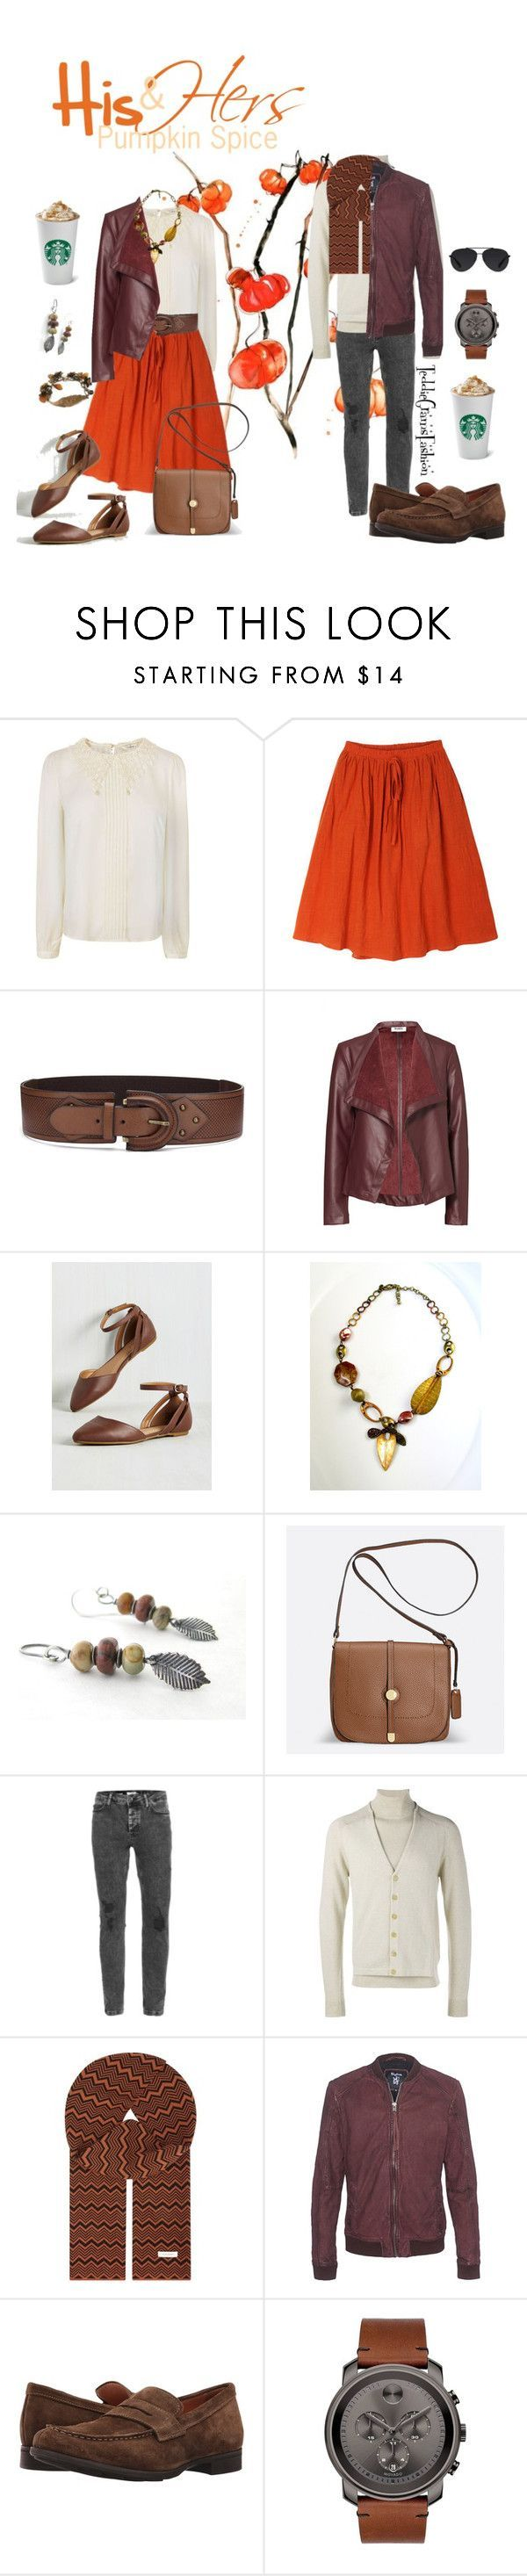 """""""His & Hers: Pumpkin Spice"""" by teddy-hummingbird ❤ liked on Polyvore featuring Darling, BB Dakota, Chico's, Avenue, Topman, Maison Margiela, Wales Bonner, TIGHA, Geox and Movado Sale! Up to 75% OFF! Shot at Stylizio for women's and men's designer handbags, luxury sunglasses, watches, jewelry, purses, wallets, clothes, underwear & more!"""